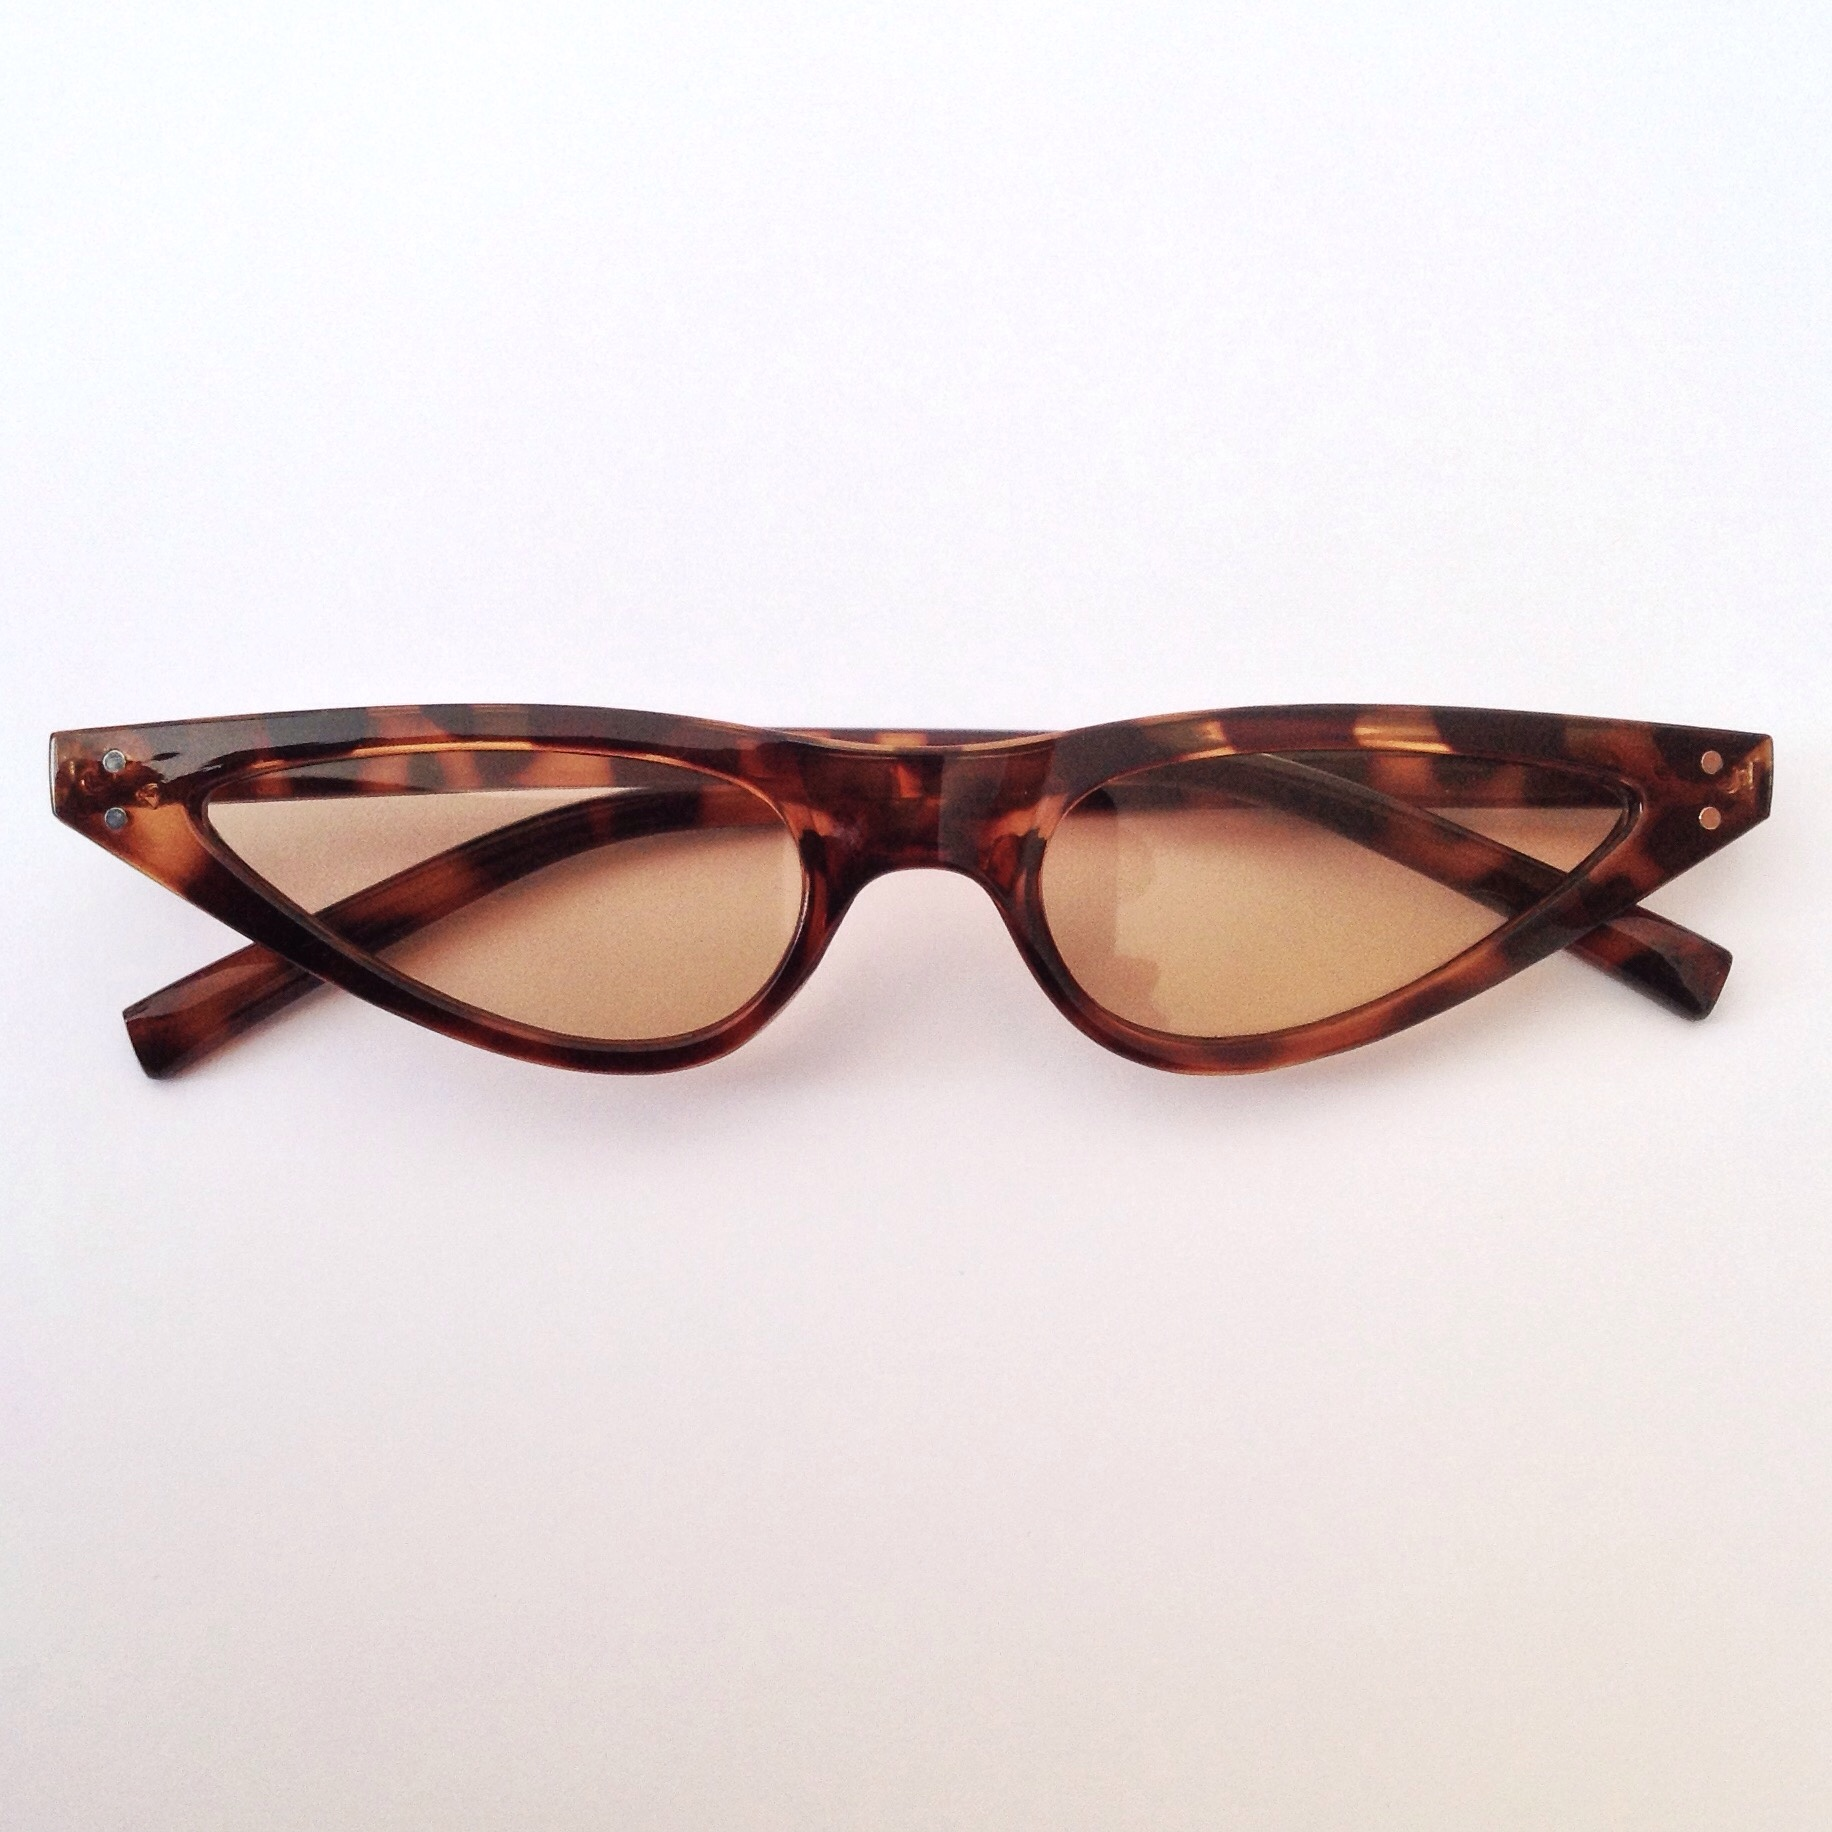 34b56e78c7  neonalien. last year. United Kingdom. On trend Retro style thin small  Tortoise shell Cat Eye Sunglasses ...